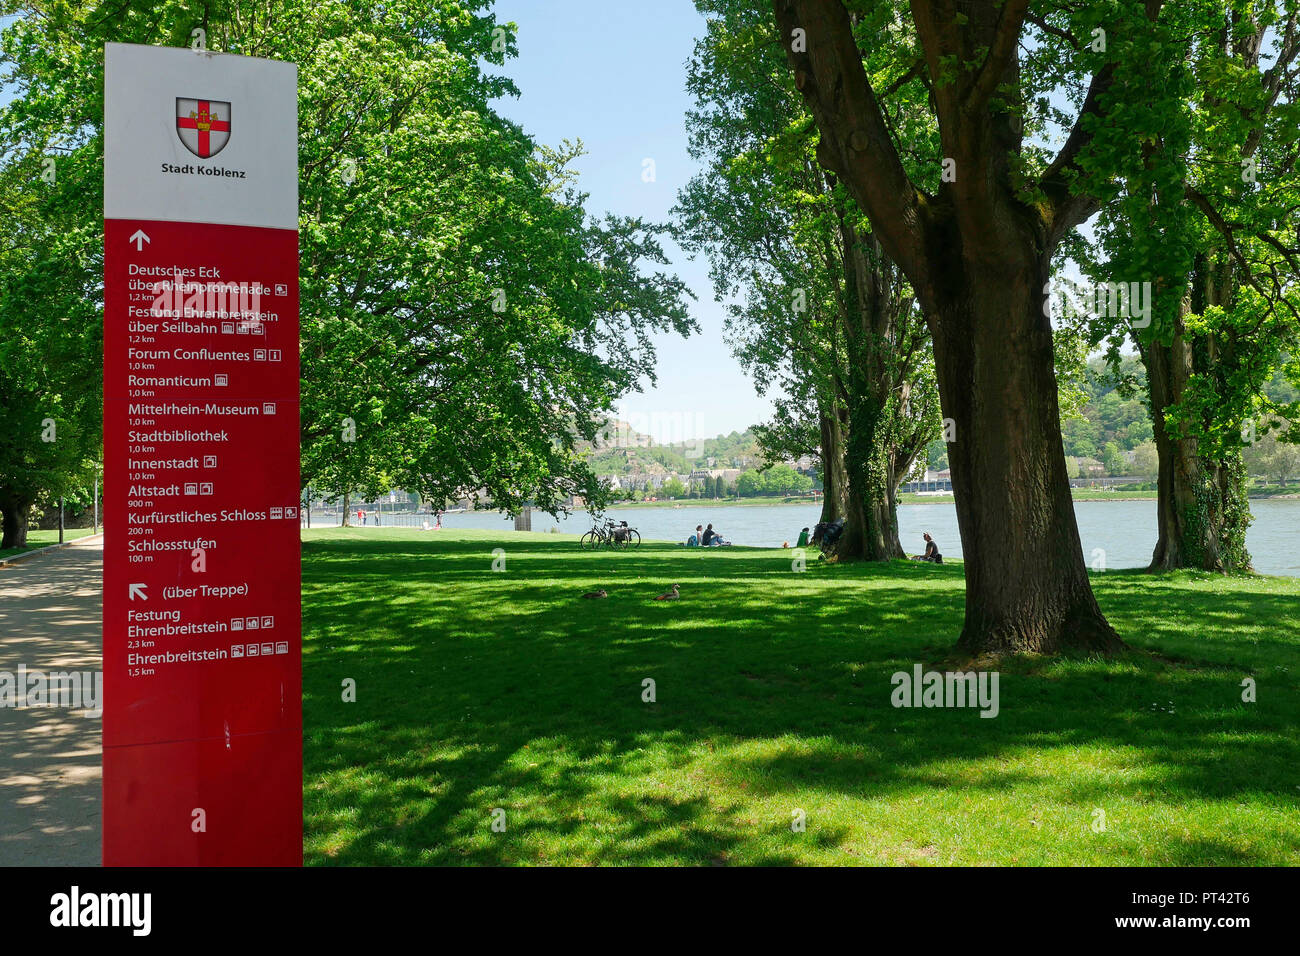 Signpost in the Empress Augusta facilities on the banks of the Rhine, Koblenz, Rhine Valley, Rhineland-Palatinate, Germany - Stock Image